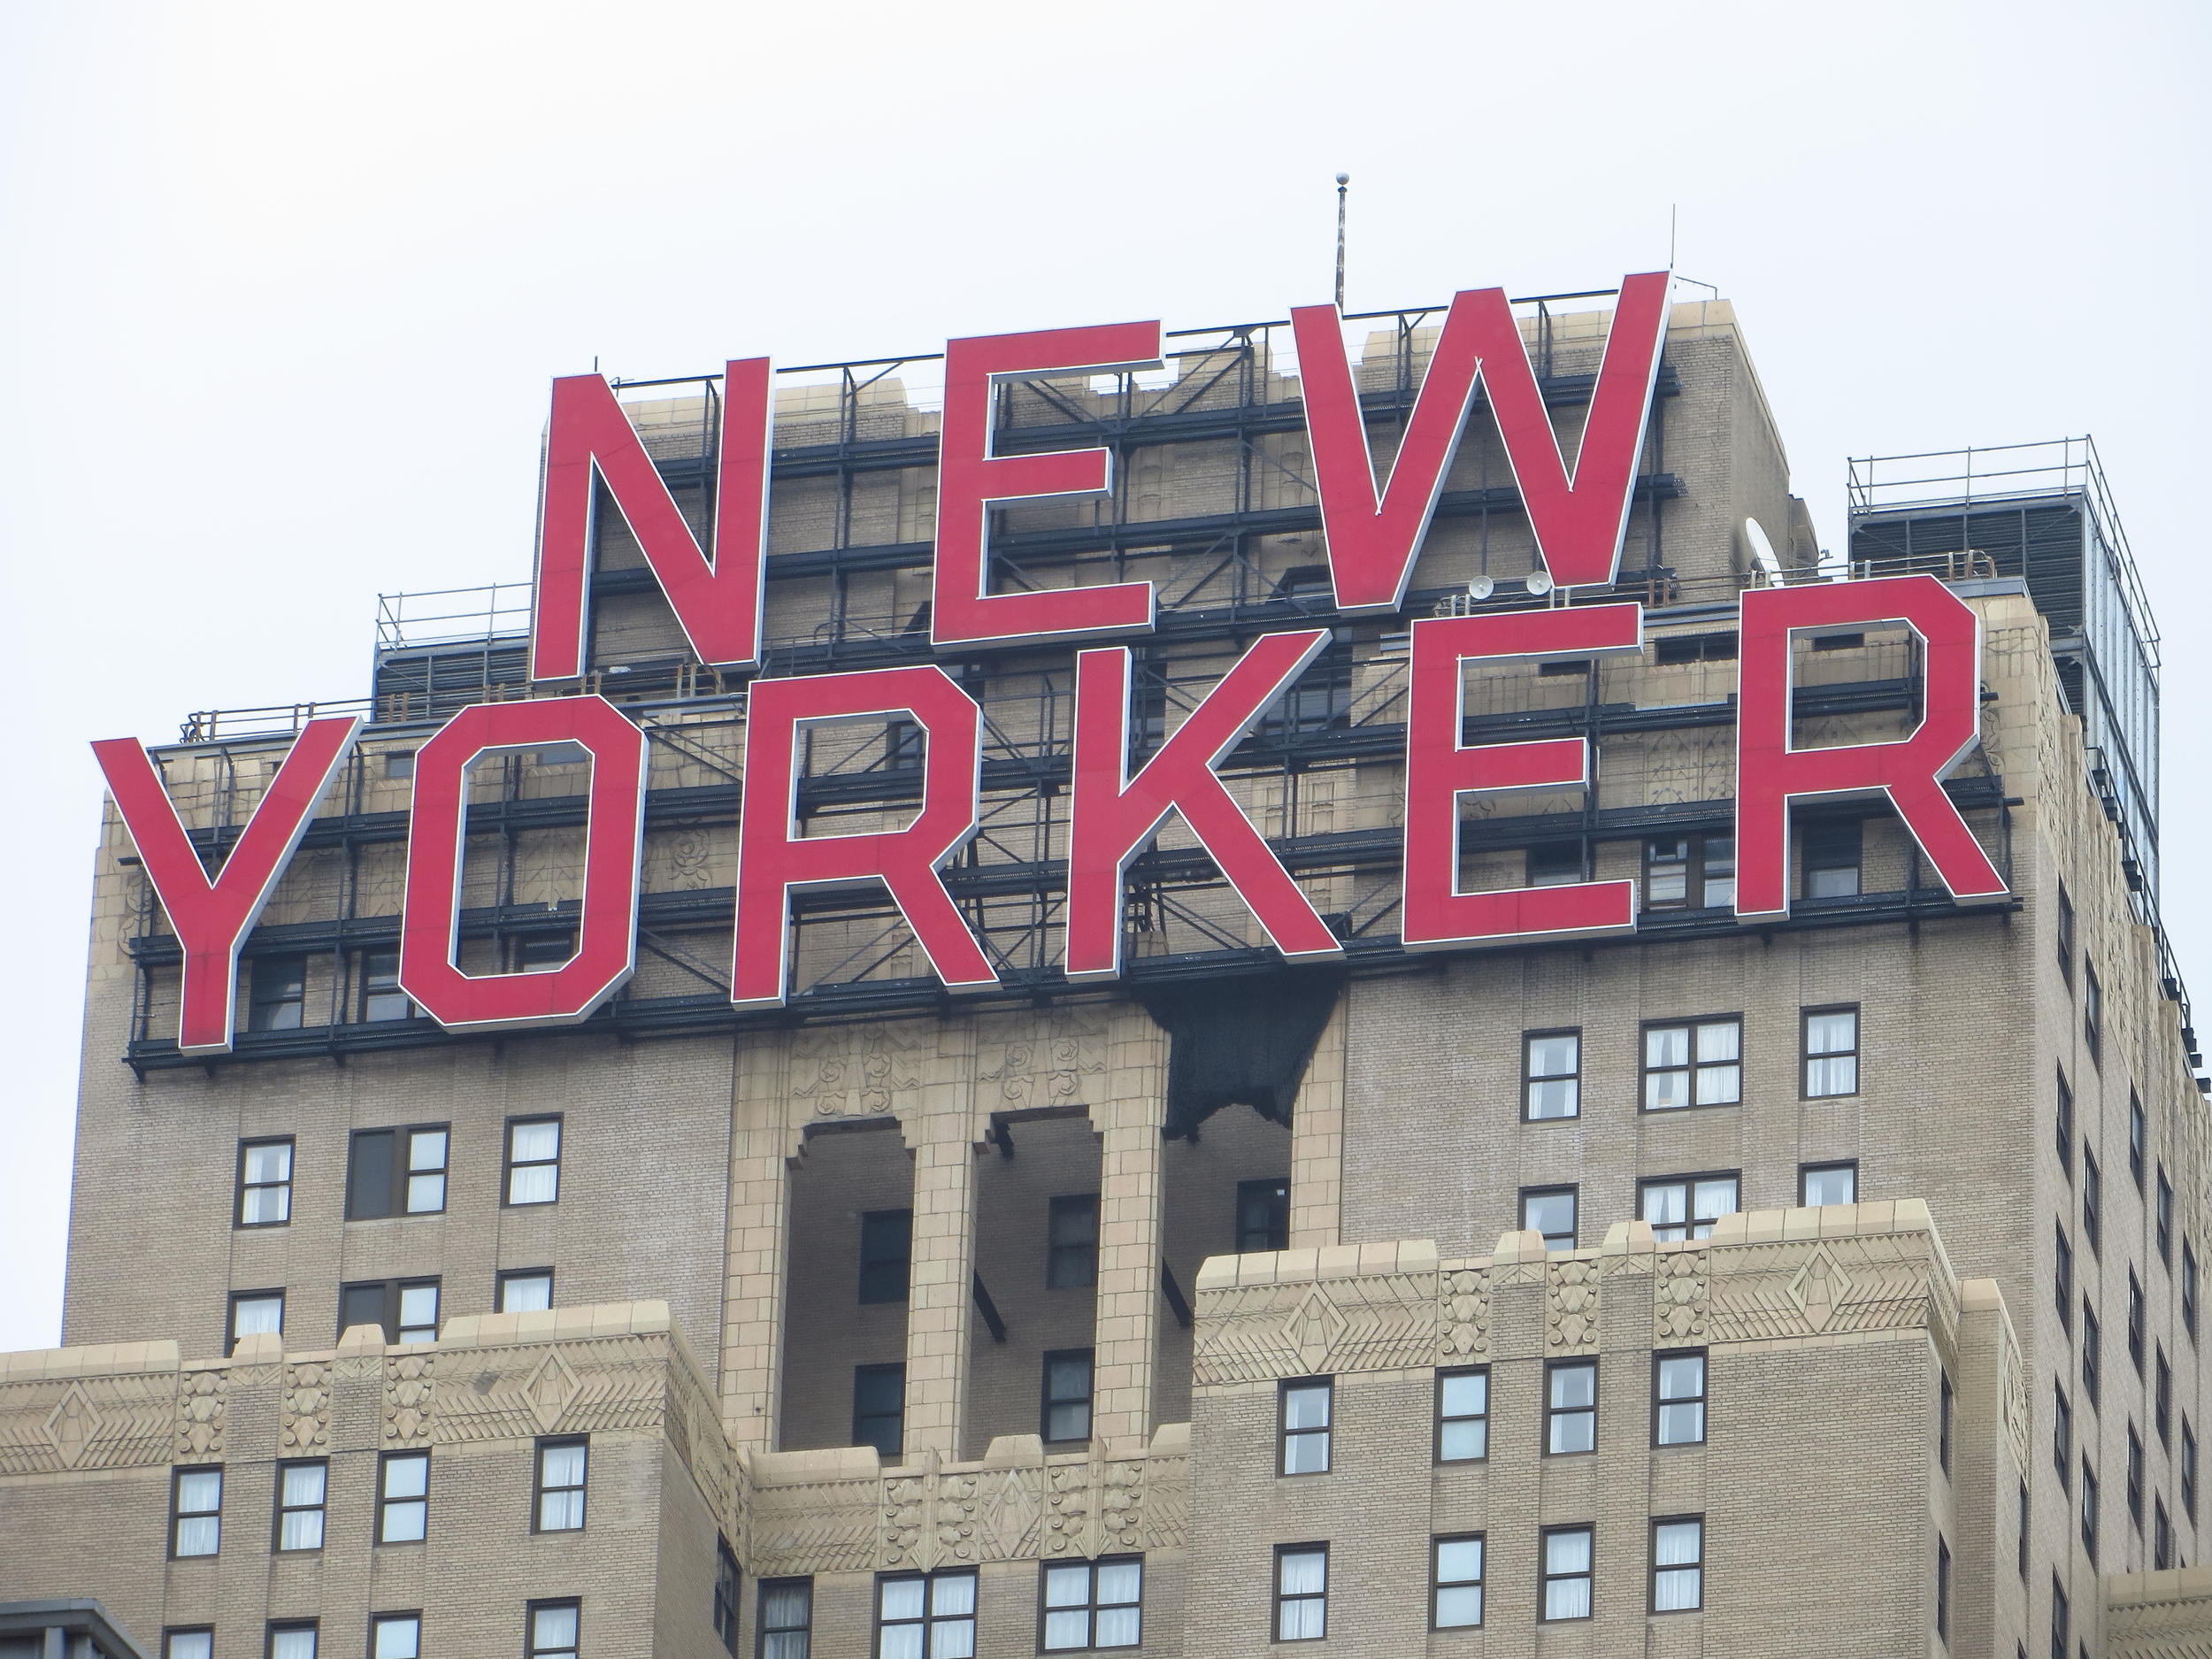 New Yorker Hotel sign